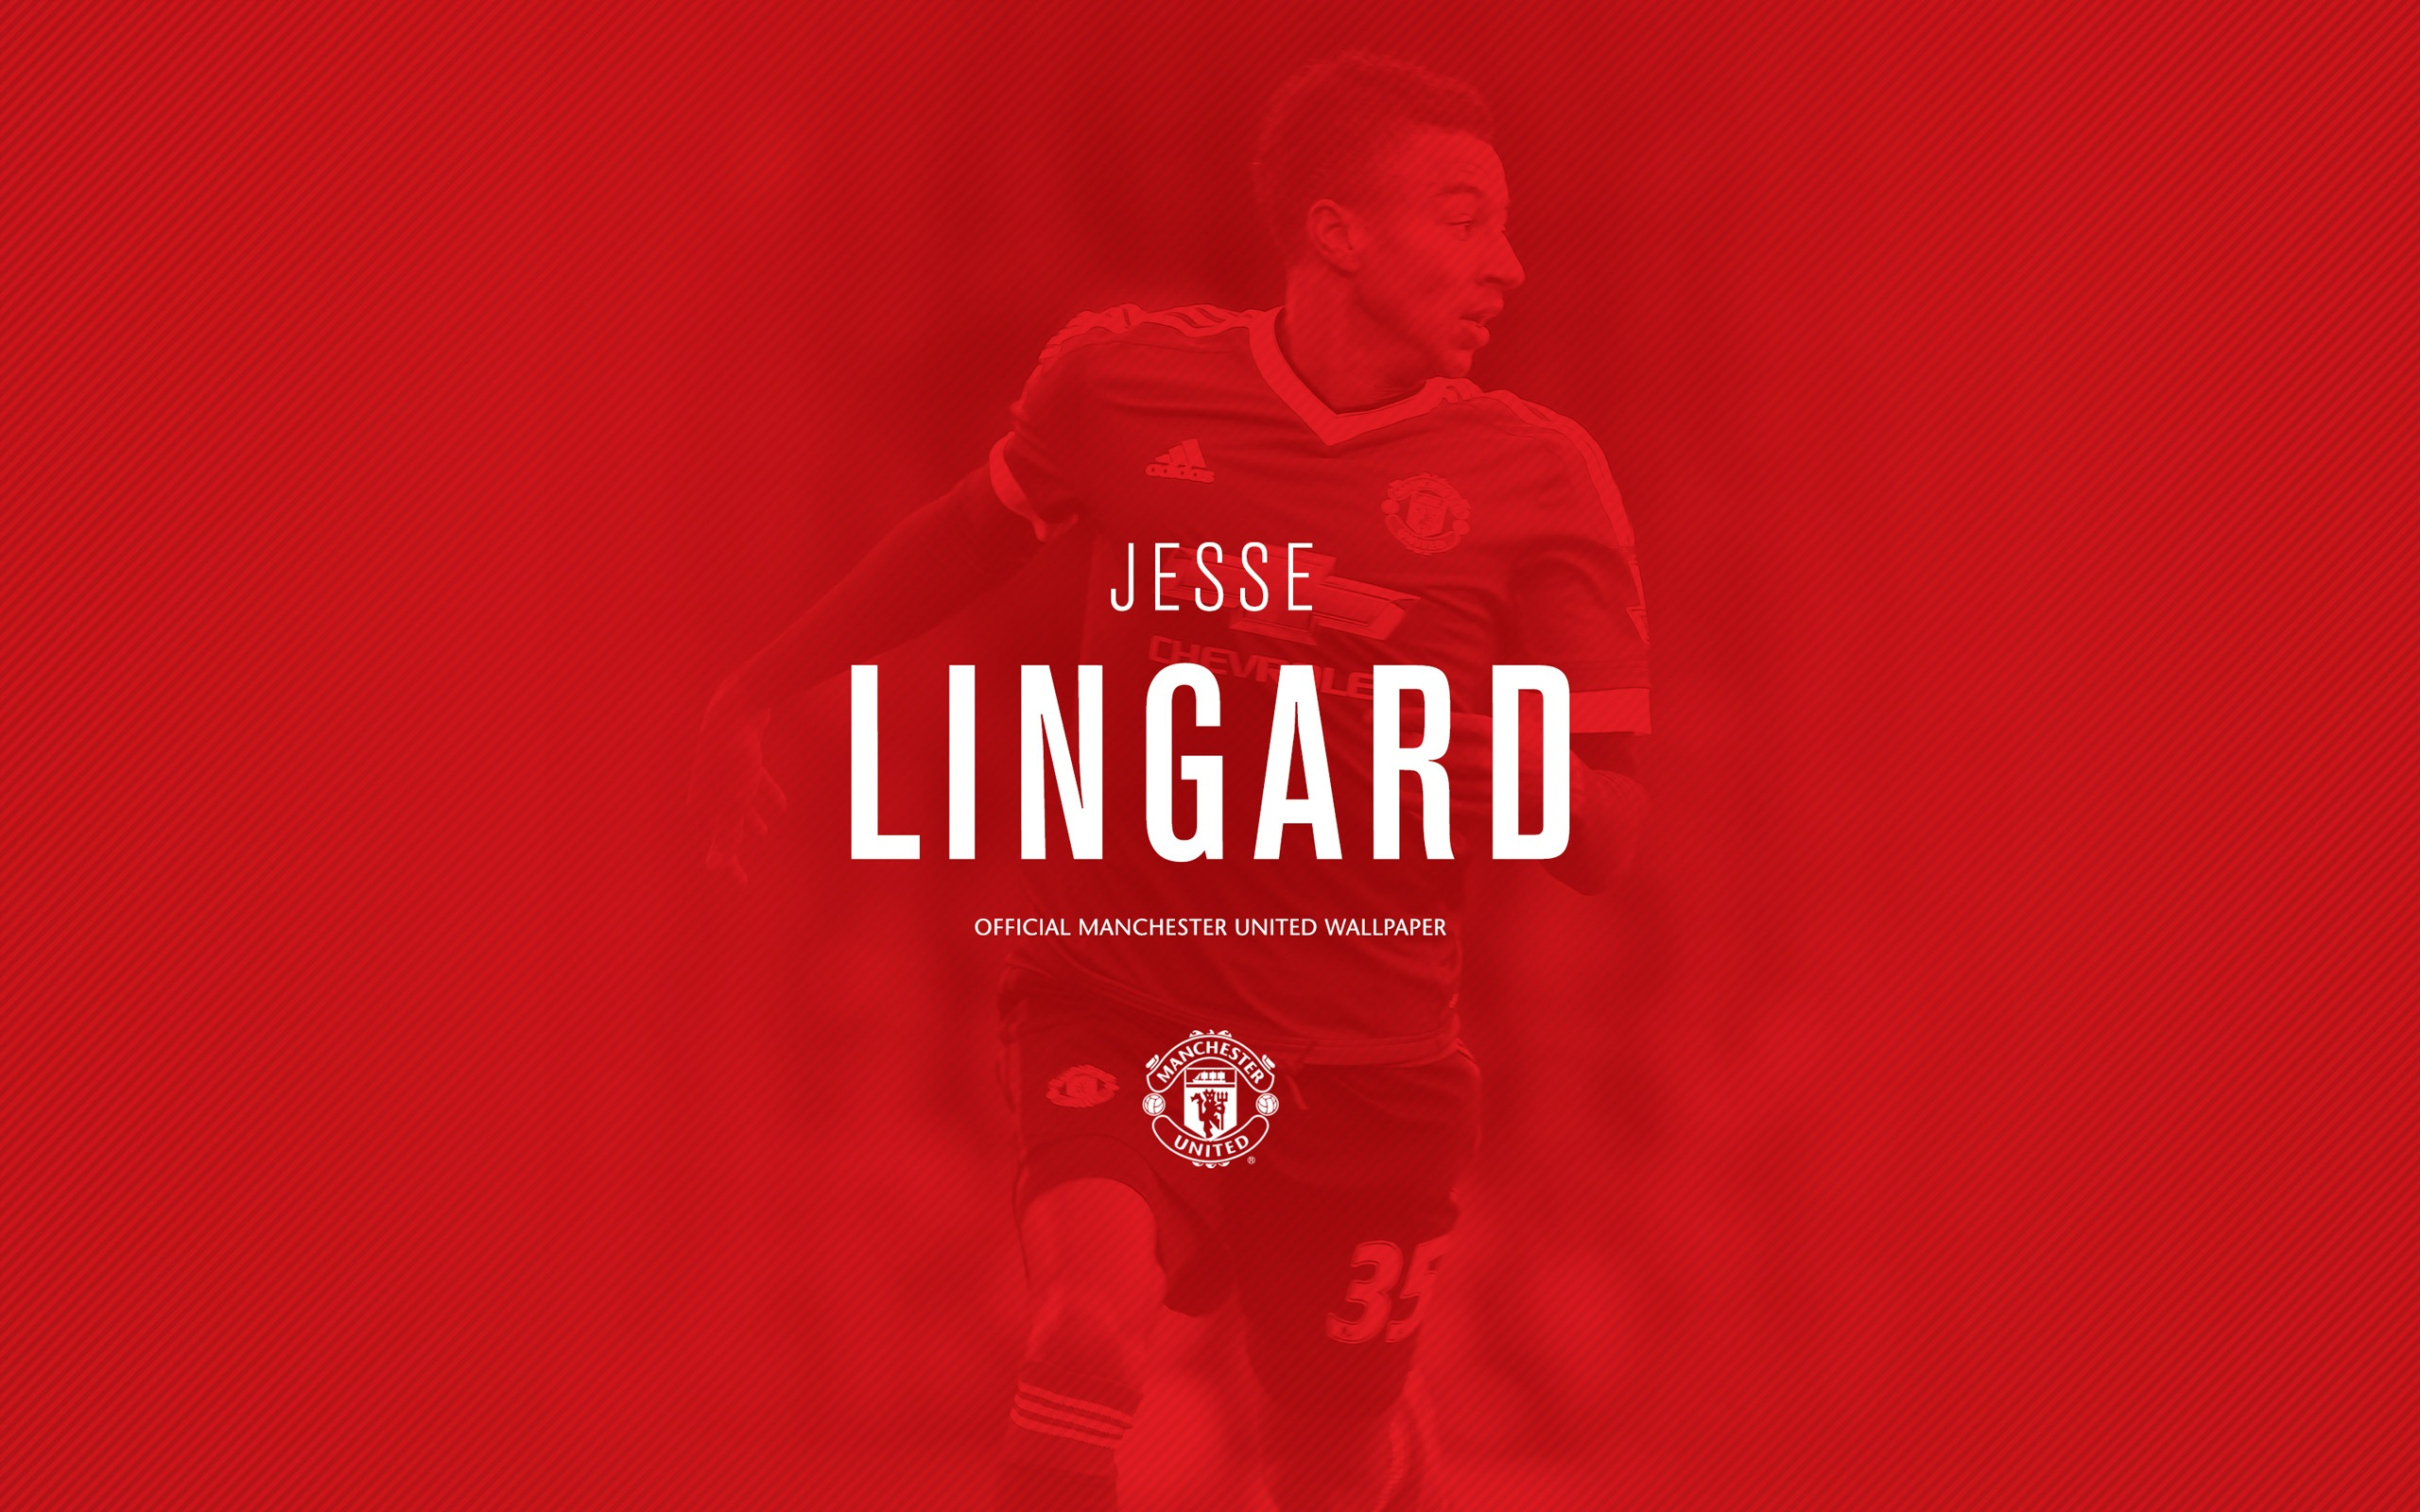 Jesse Lingard 2016 Manchester United Hd Wallpaper Preview